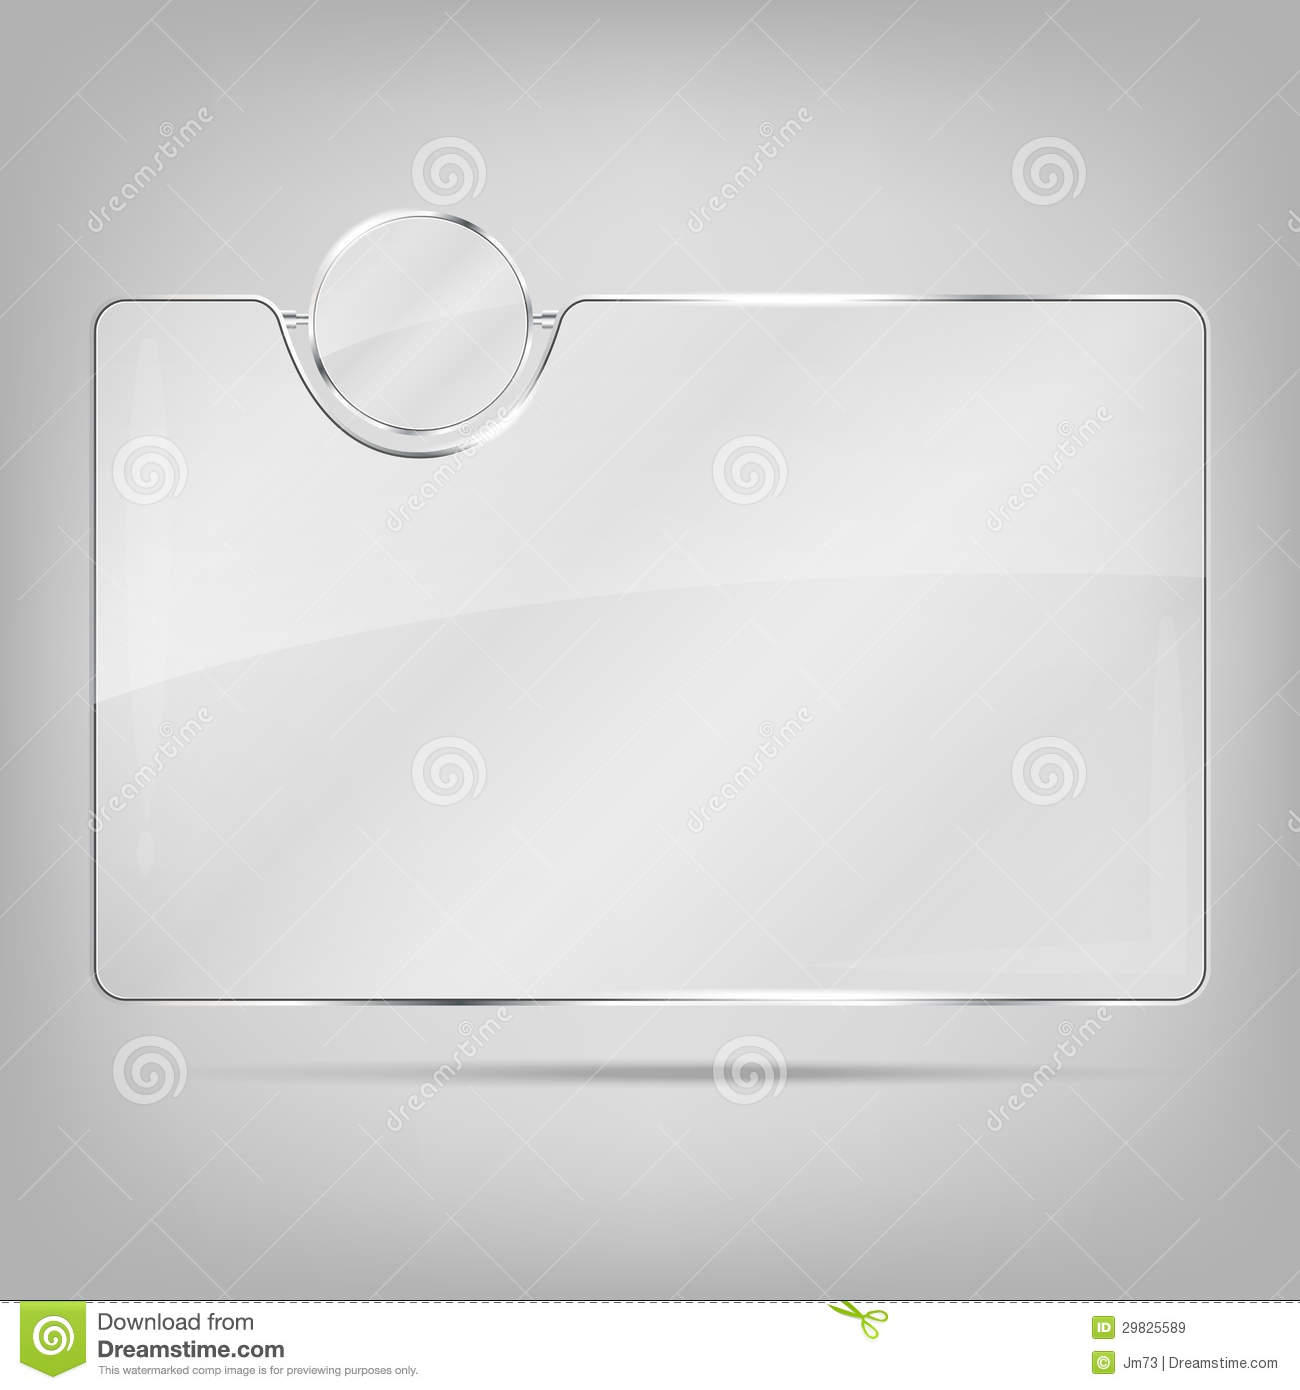 Cadre Photo Verre Transparent Cadre En Verre Transparent Illustration De Vecteur Illustration